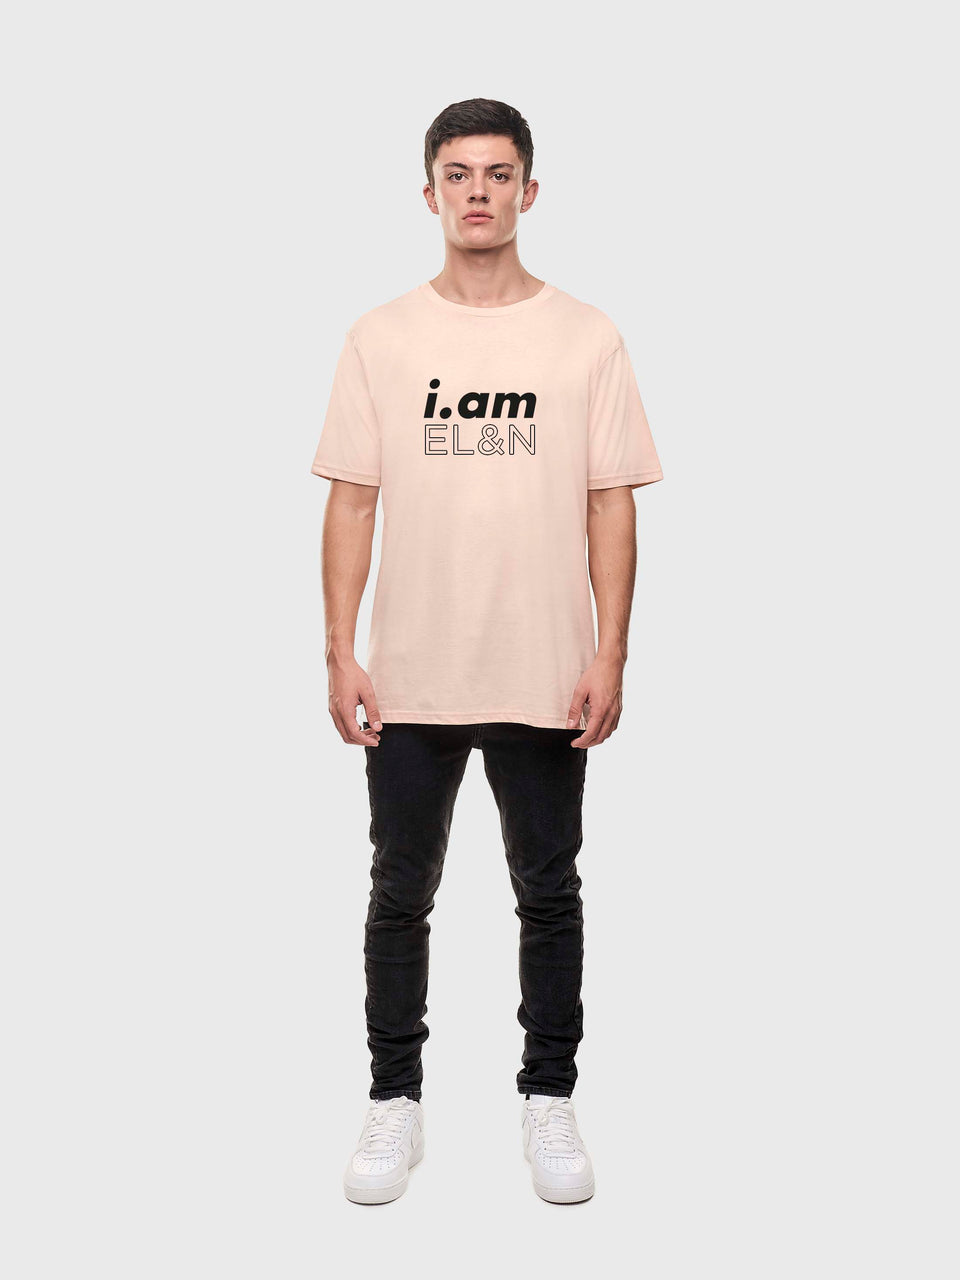 i.am EL&N - Pink / Grey/ White - Unisex T